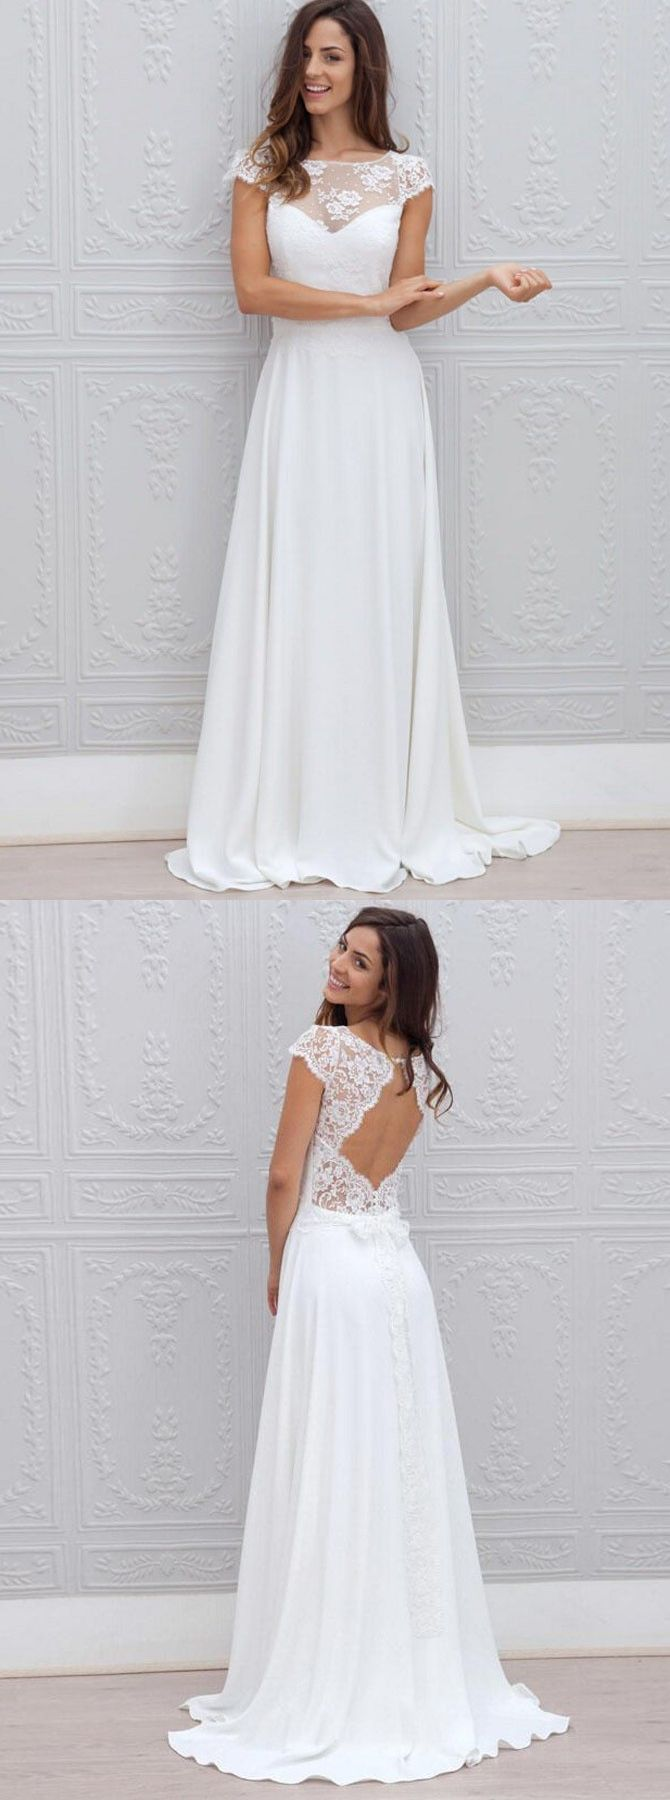 beach wedding dresses,lace wedding dresses,simple wedding dresses,bridal gowns @simpledress2480